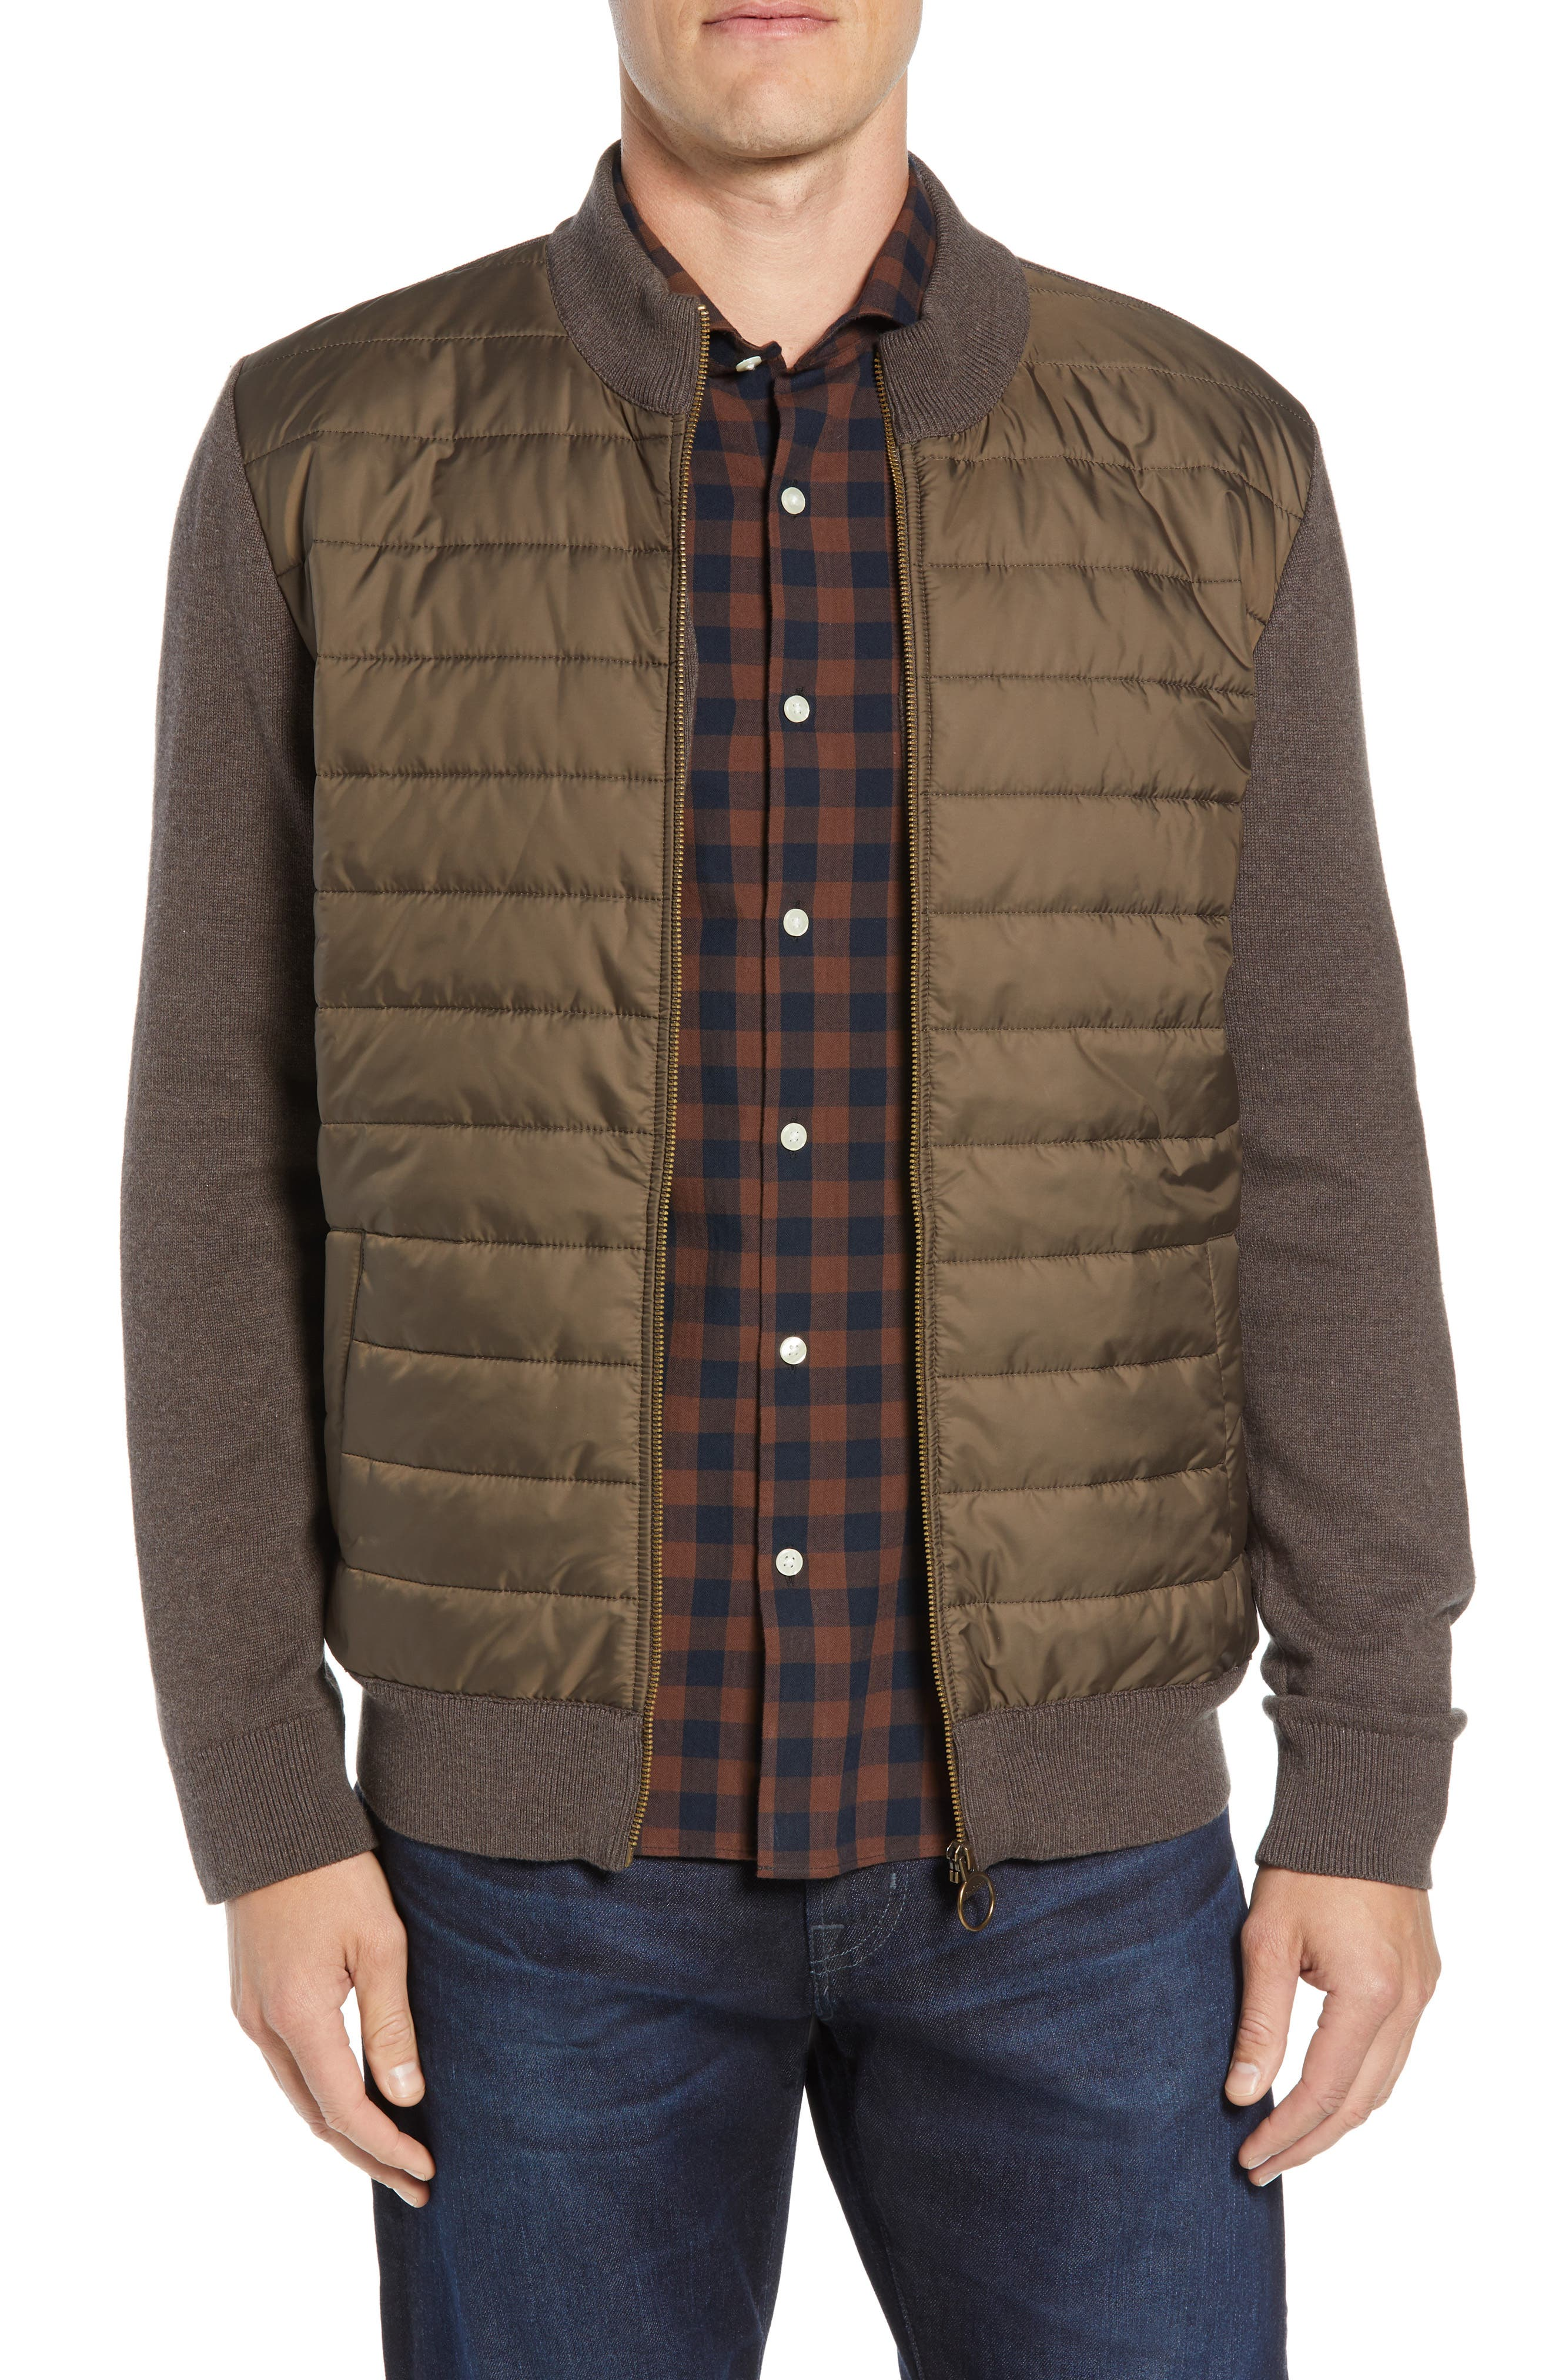 Carn Baffle Front Knit Jacket,                         Main,                         color, CLAY